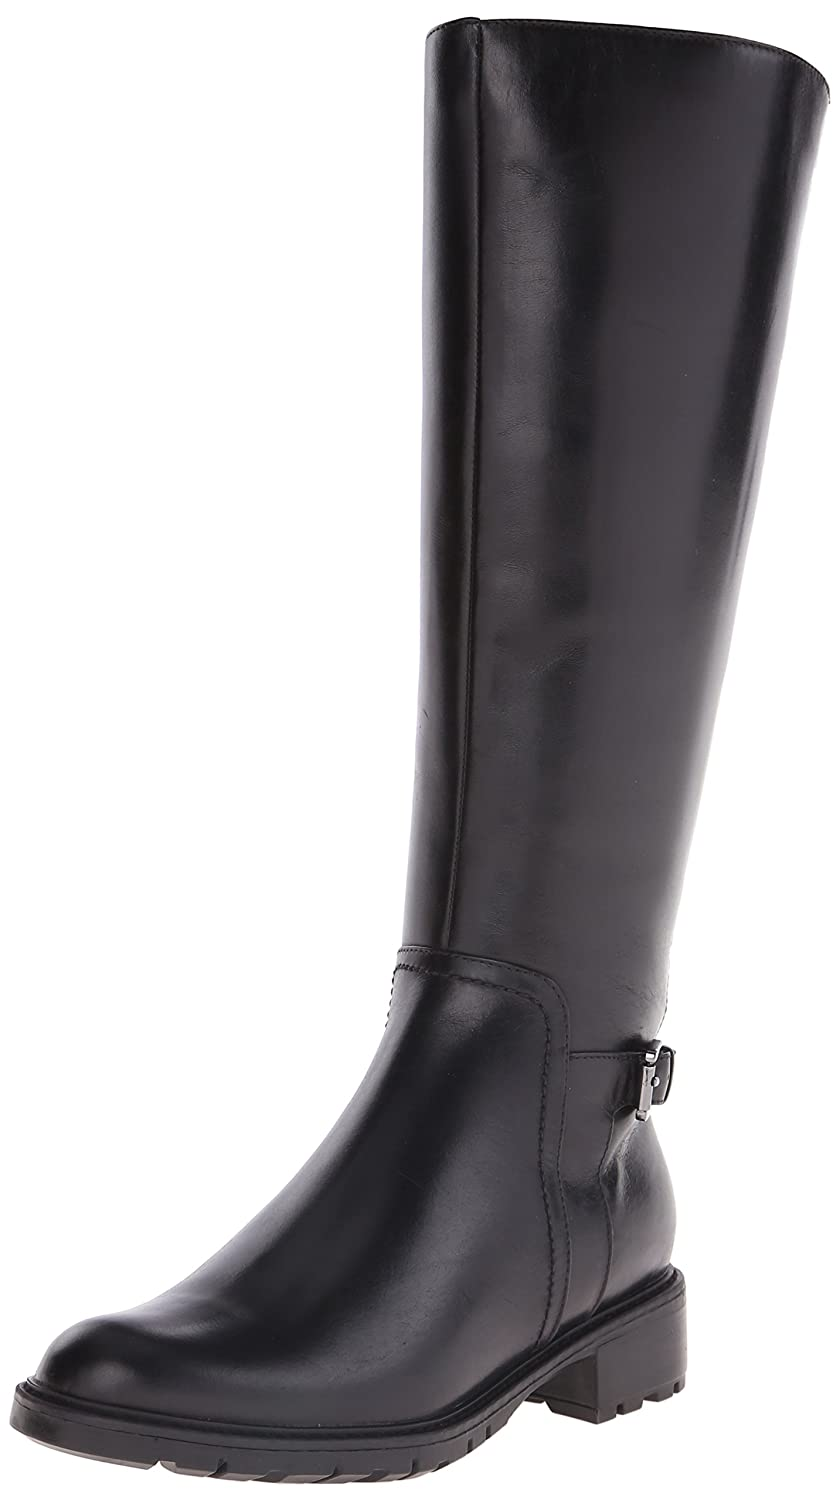 Blondo Women's Vassa Waterproof Riding Boot B01015NIP2 10 W US|Black